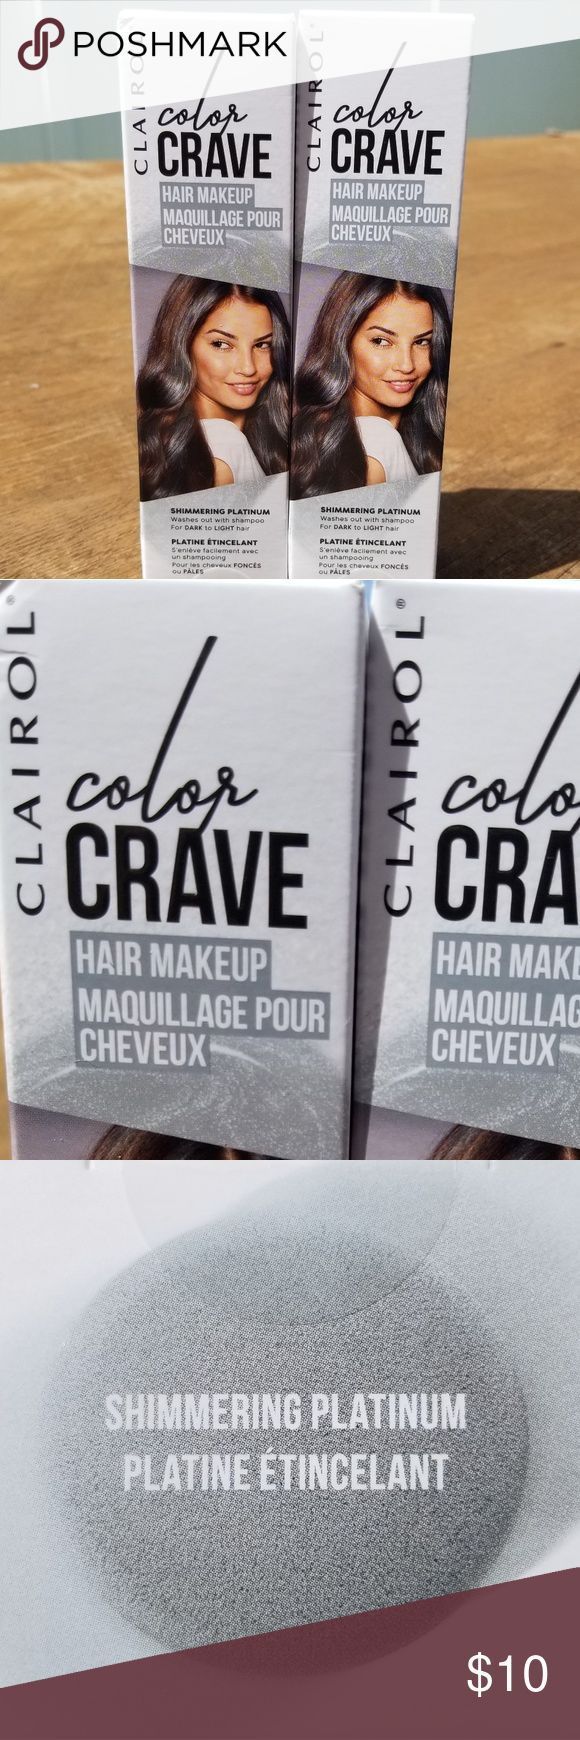 2 Clairol Color Crave 2 Clairol Color Crave hair makeup in